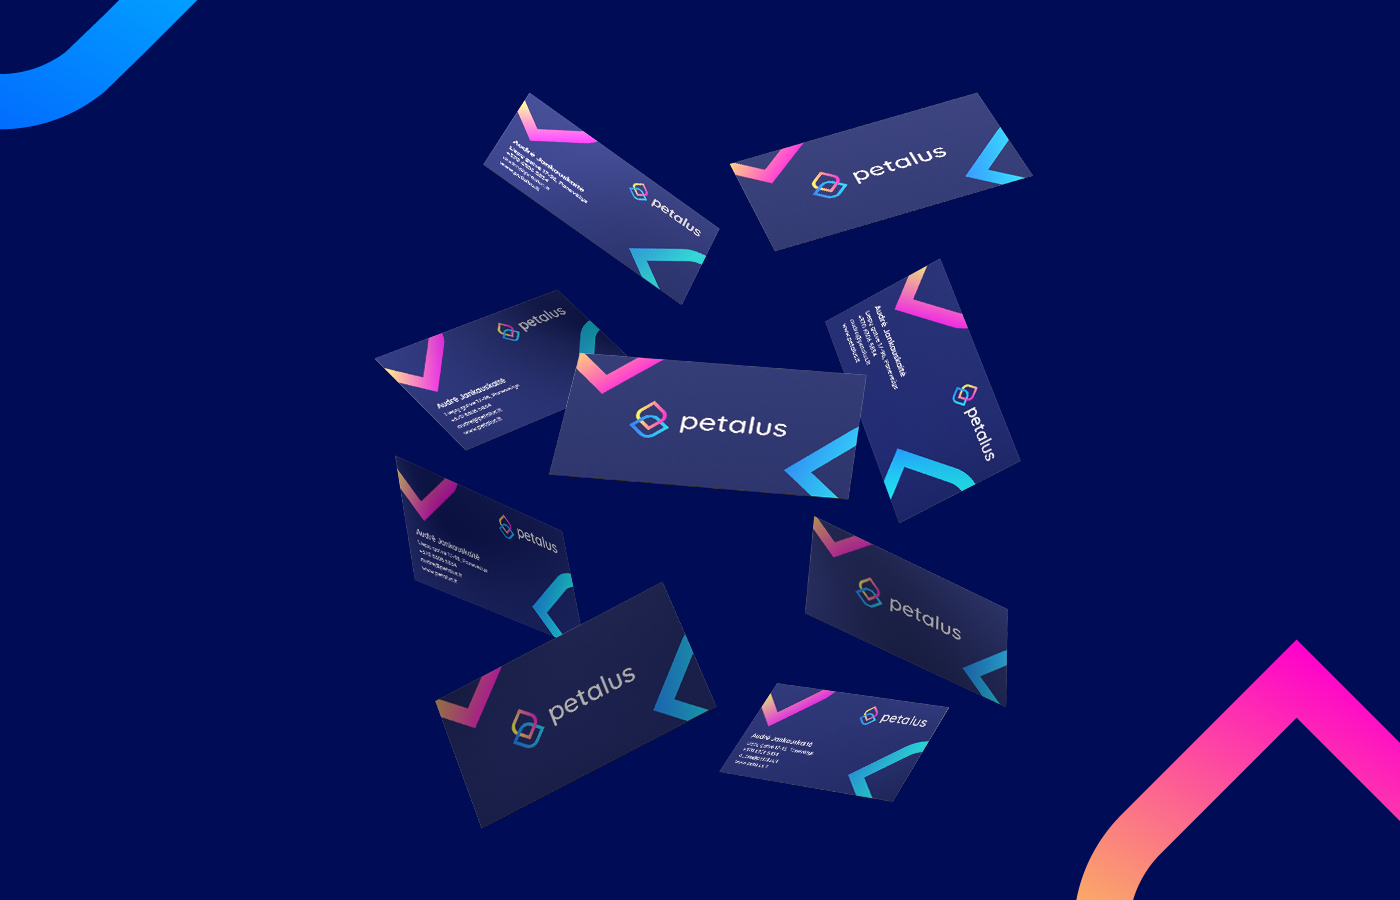 petalus-business-card-mockup